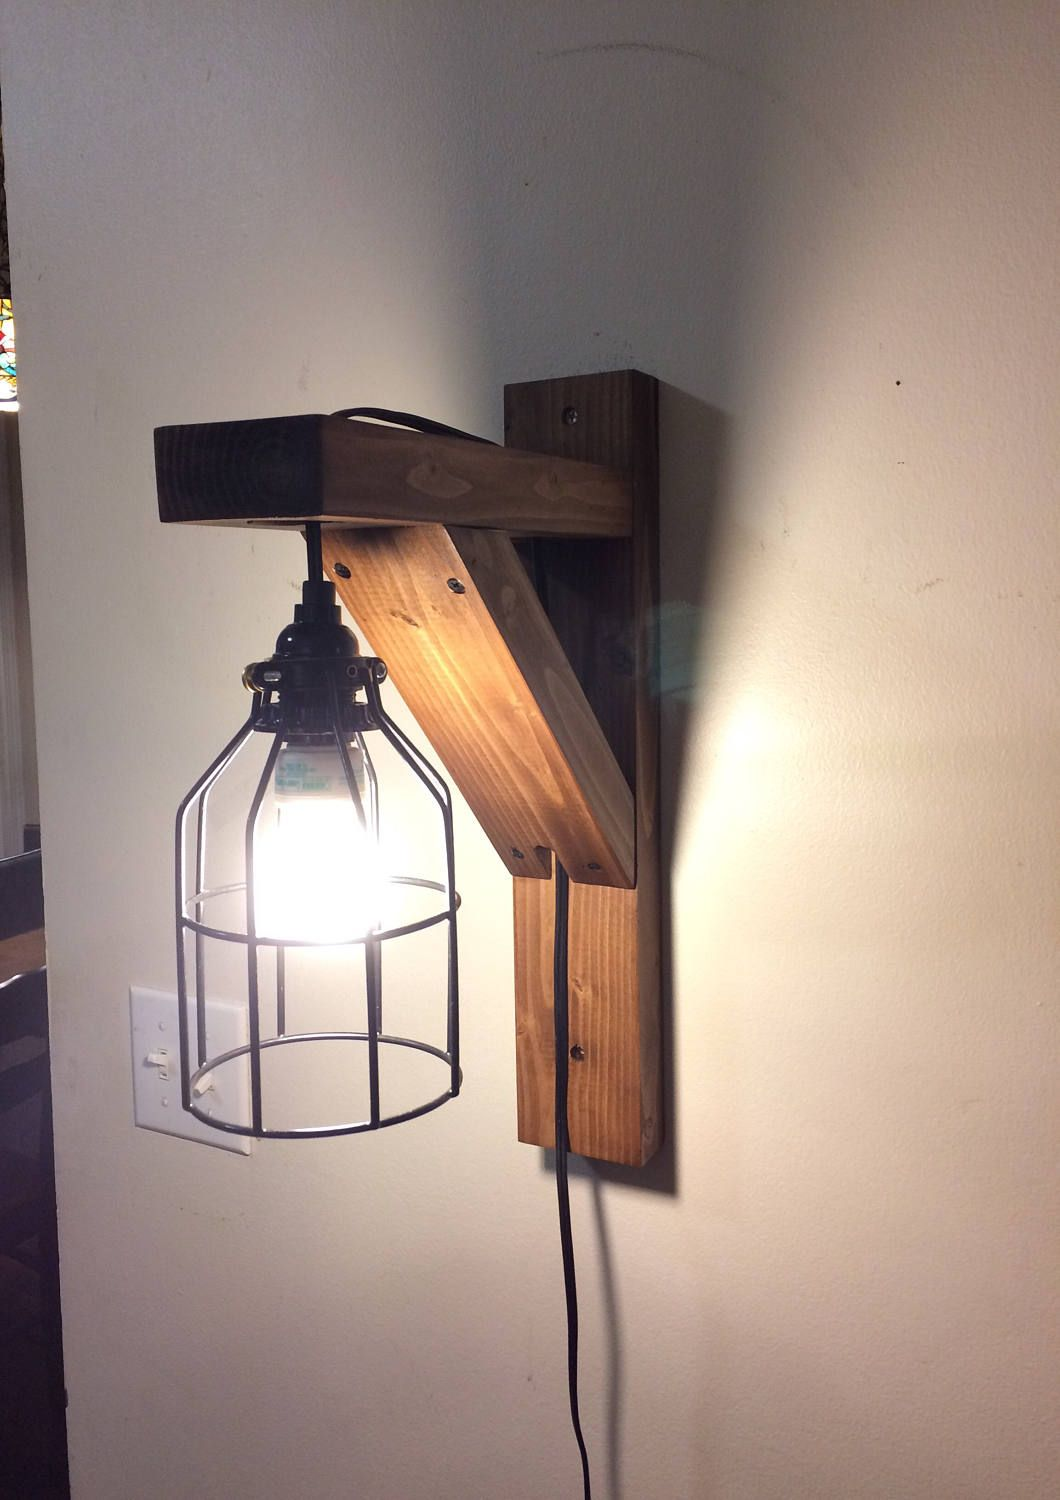 Rustic Wooden Wall Lamp Designs You Can Add To Anyroom - Aria Radite